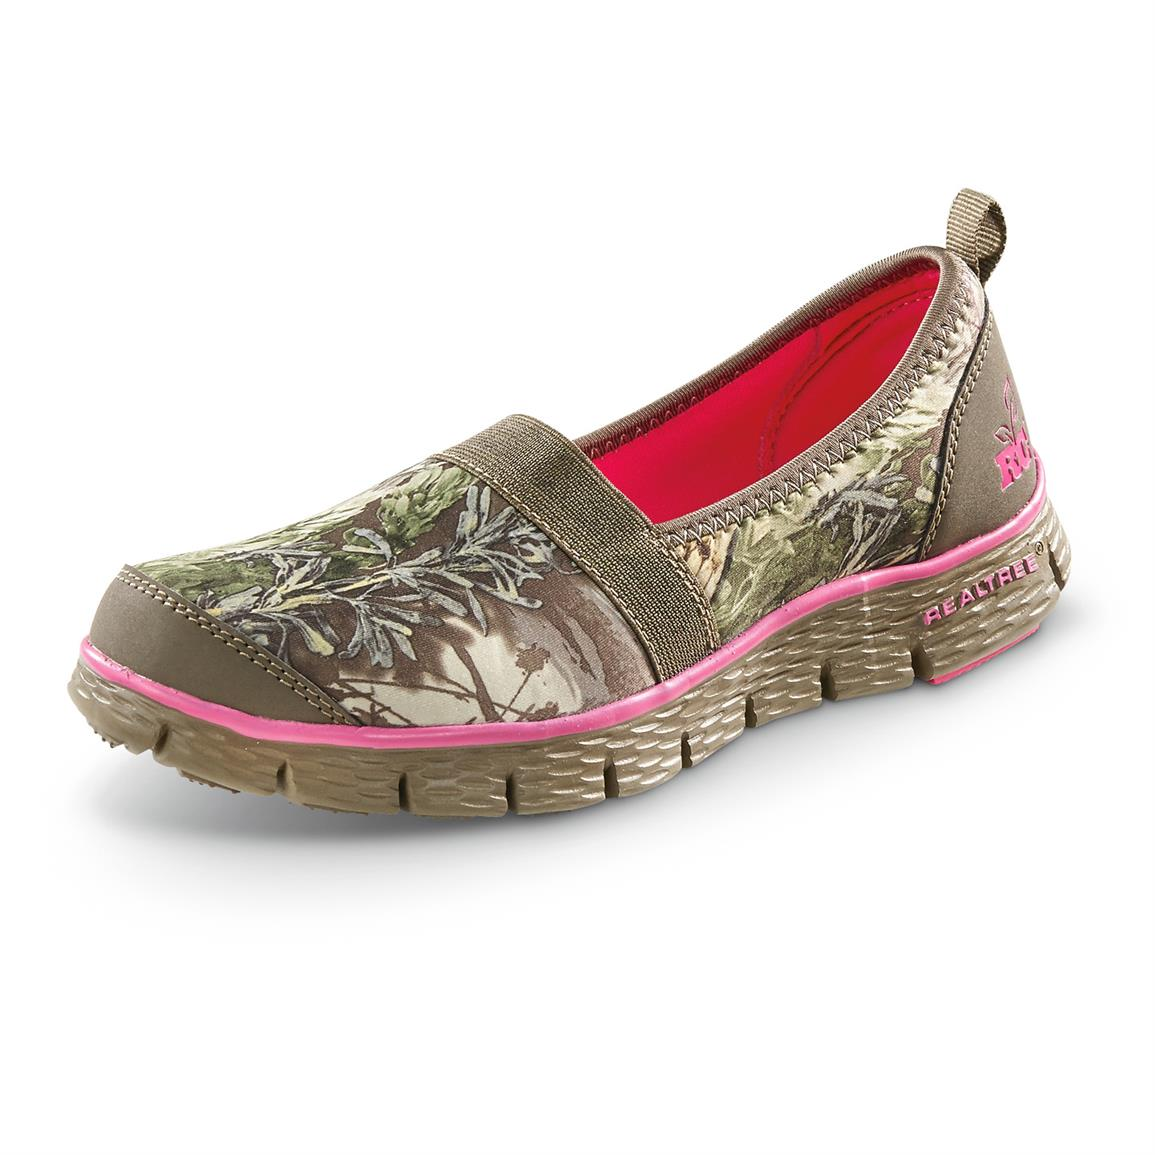 Realtree Girl Sophie Slip-on Shoes, Khaki / Realtree MAX-1